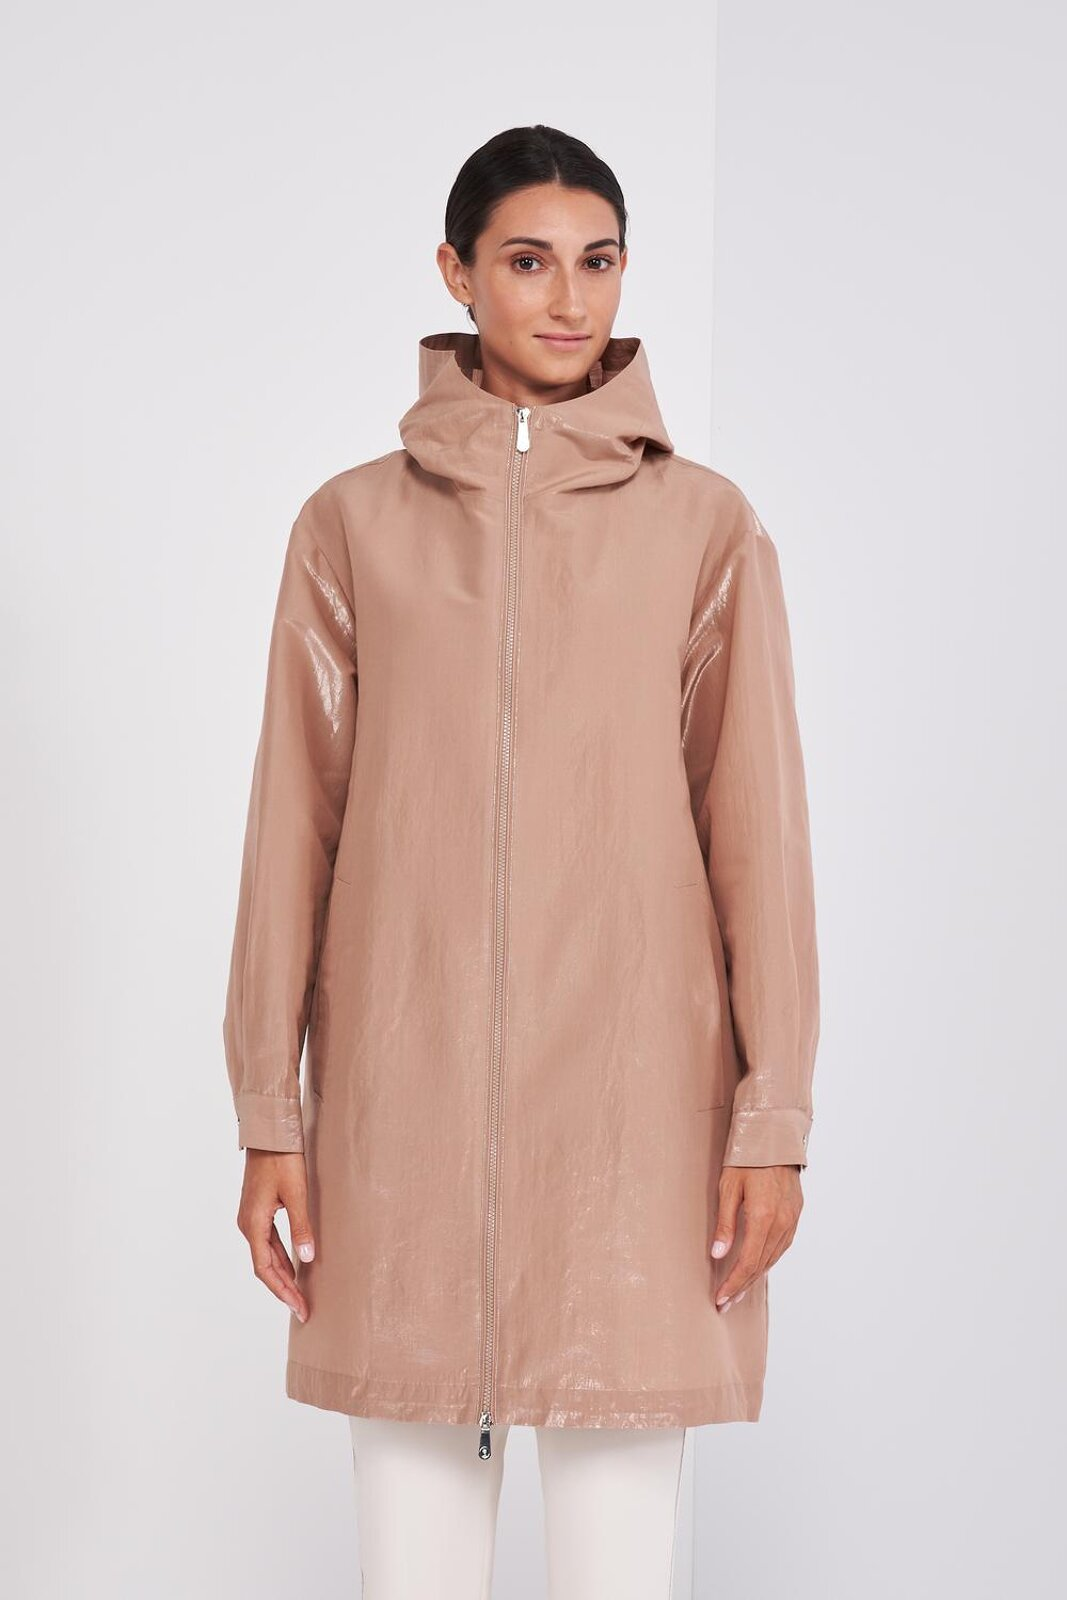 Lightweight Long Sleeve Parka In Cotton Taffeta With Light Iridescent Effect. Adjustable hood with laces, high collar, two side pockets. Front Closure With Hidden Zip. Regular fit. - Peserico